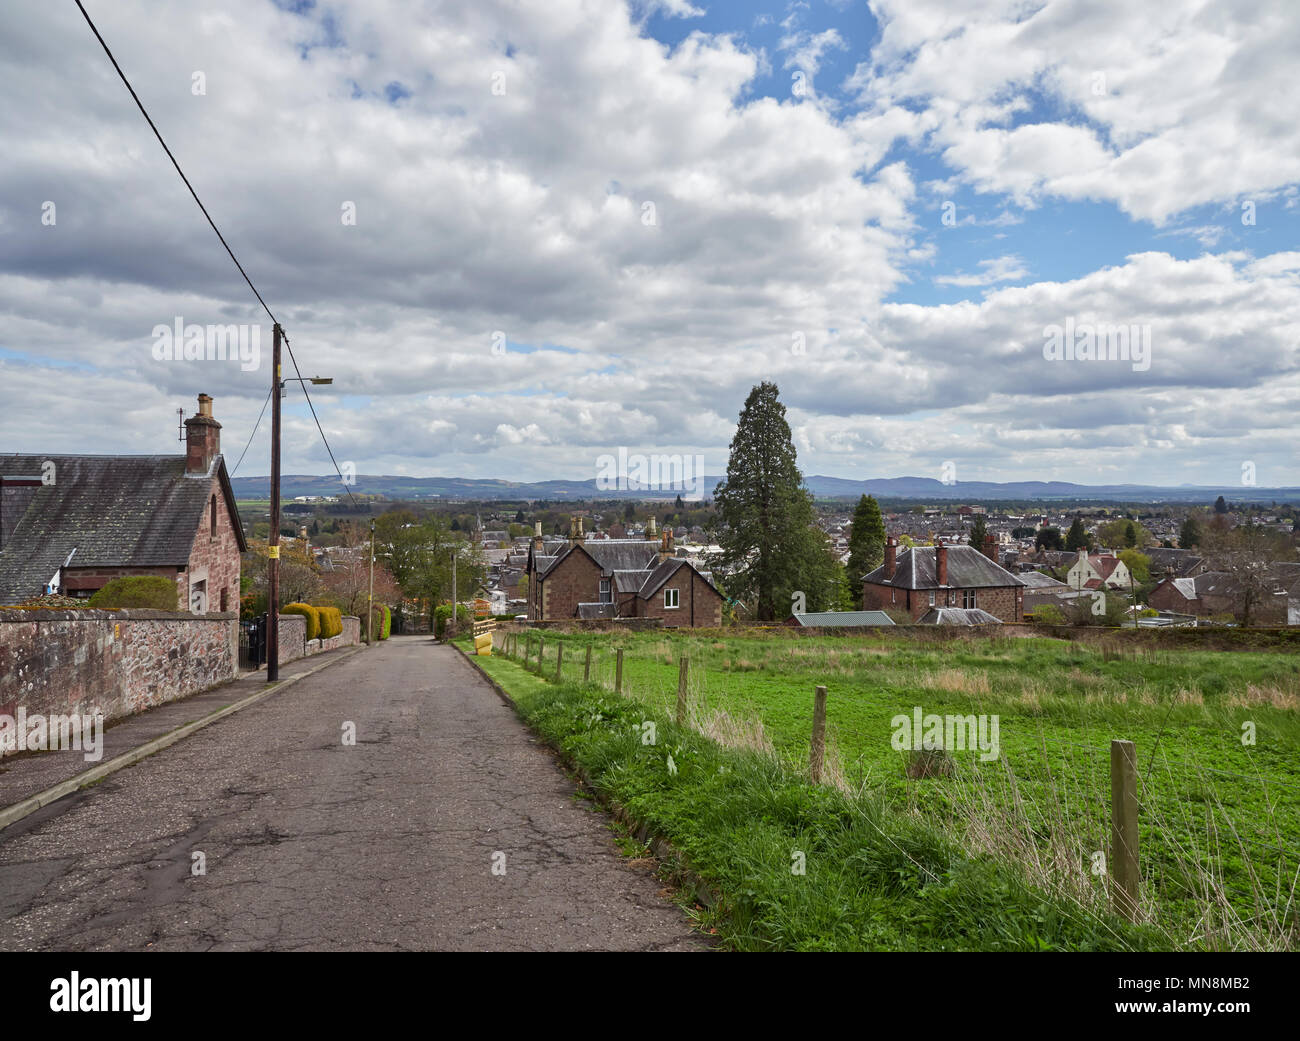 Looking towards the Sidlaw Hills from Hill Street in Blairgowrie, with the Town in the Foreground with large Country Houses. Perthshire, Scotland - Stock Image